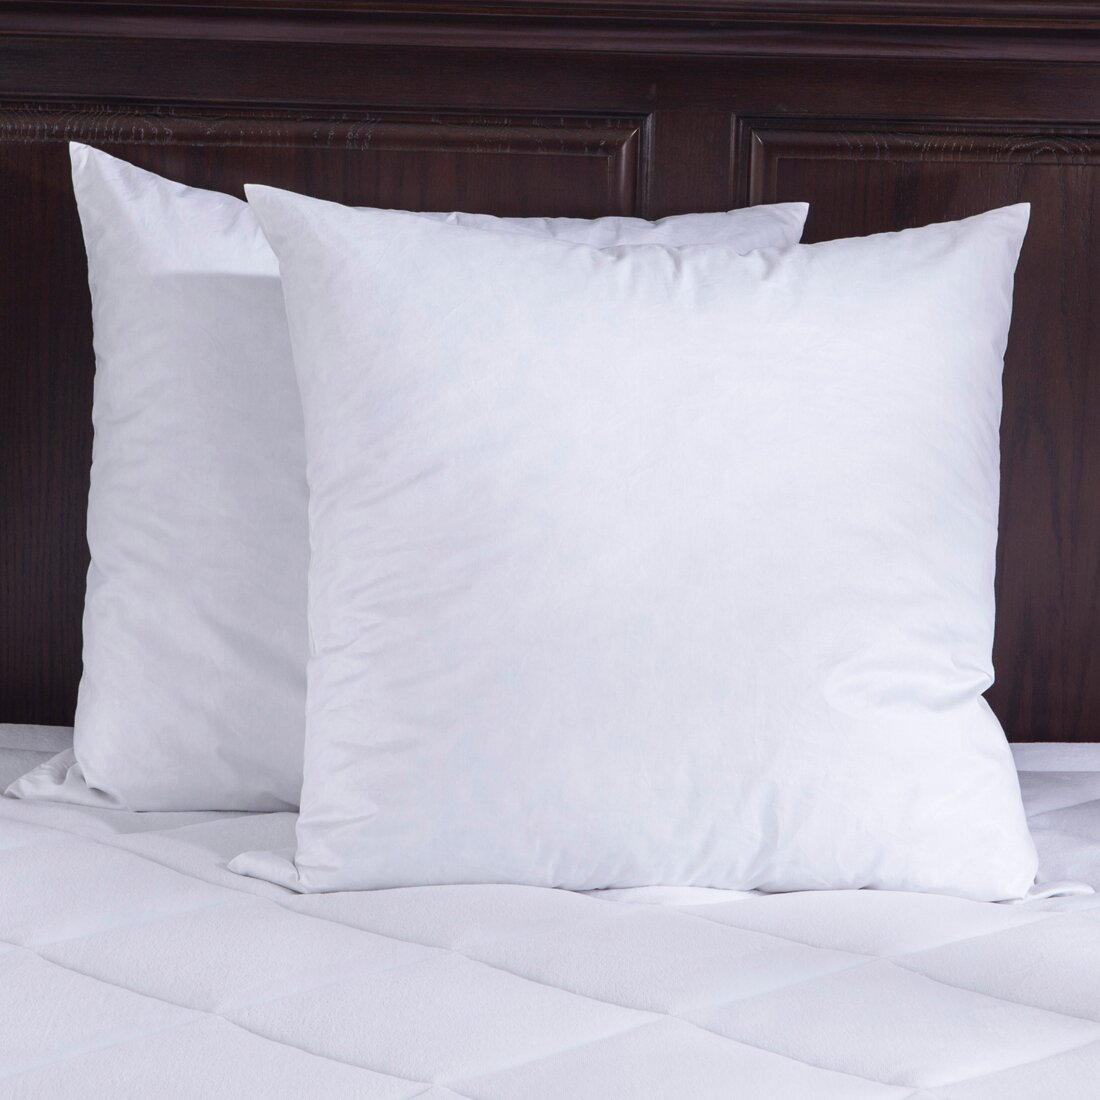 Puredown bed insert feathers pillow reviews wayfair for Bed pillows reviews